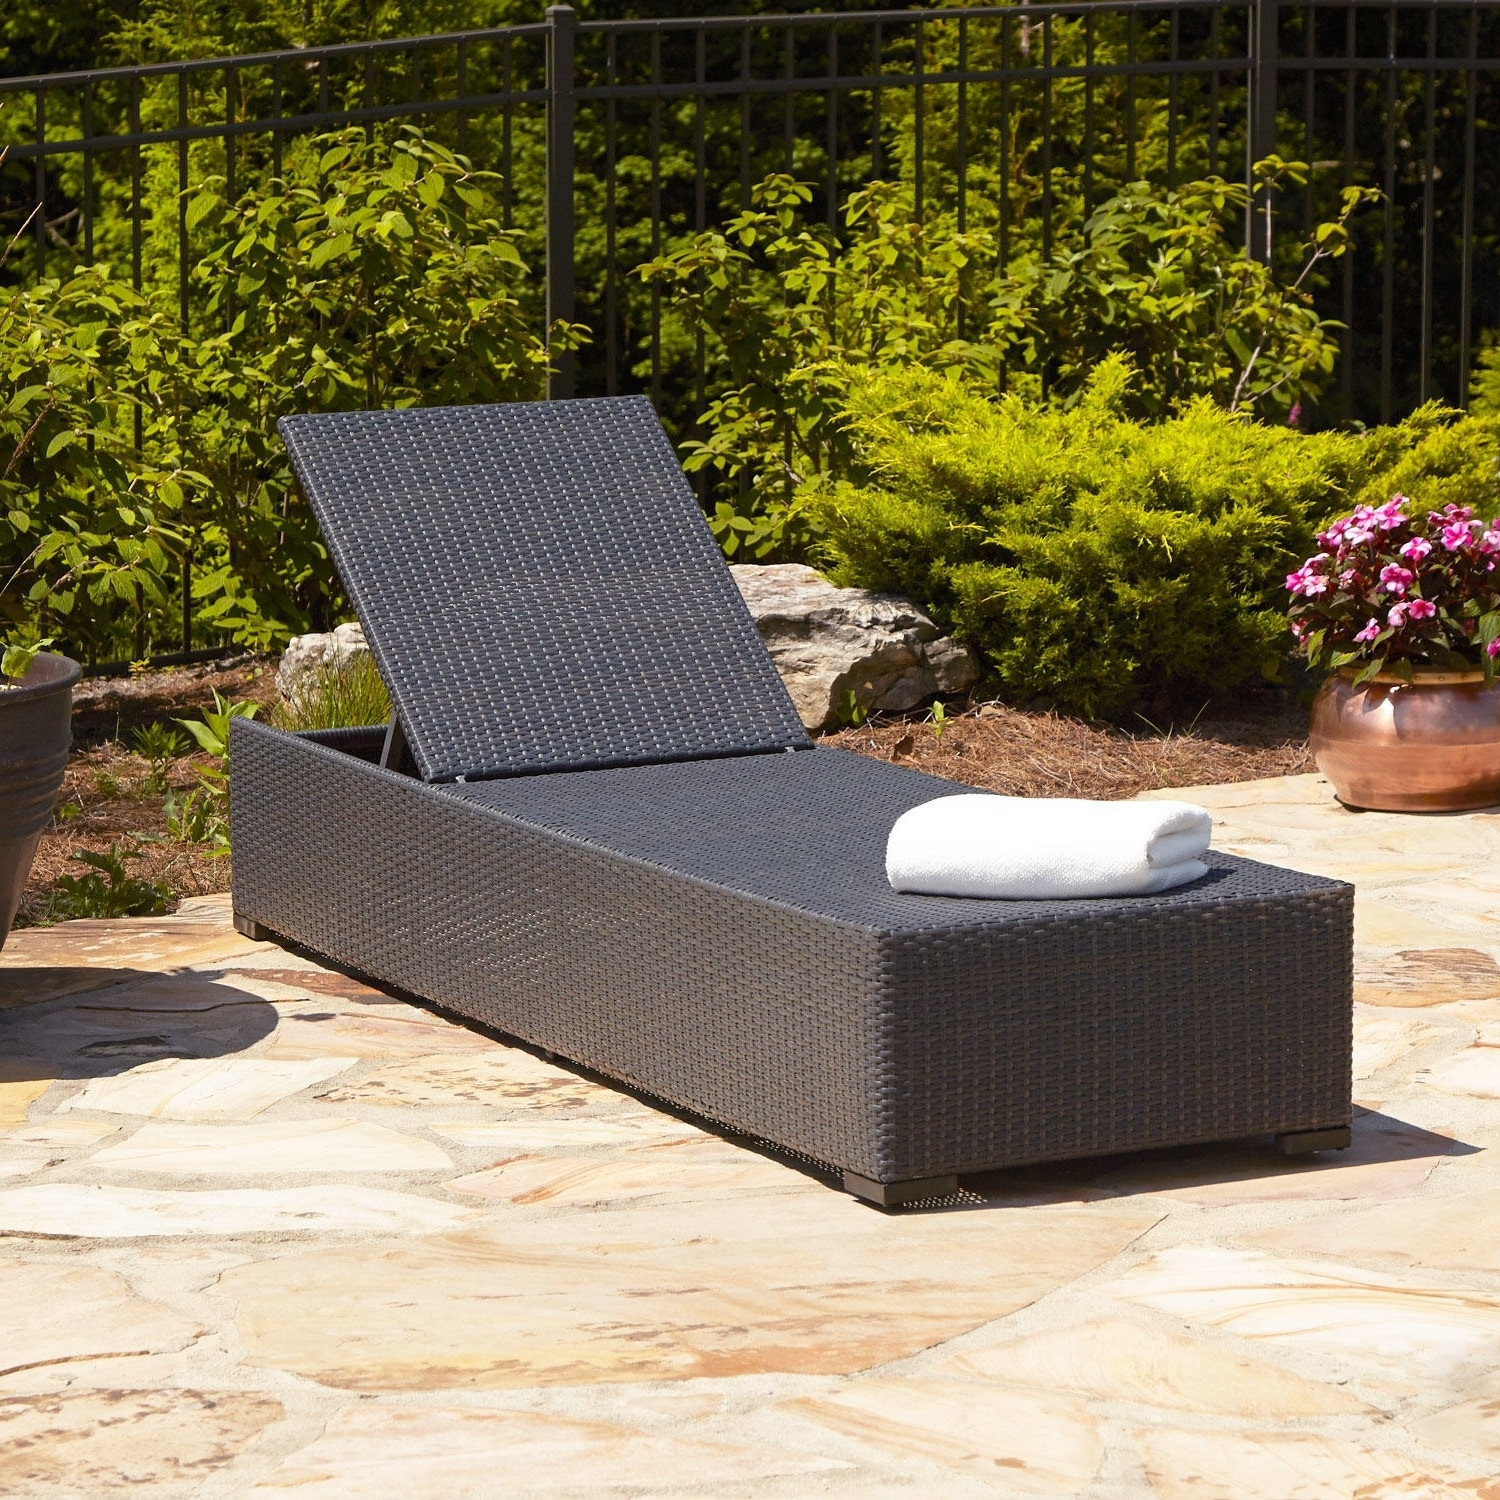 Resin Wicker Chaise Lounges Within Most Up To Date Patio Chaise Lounge As The Must Have Furniture In Your Pool Deck (View 11 of 15)